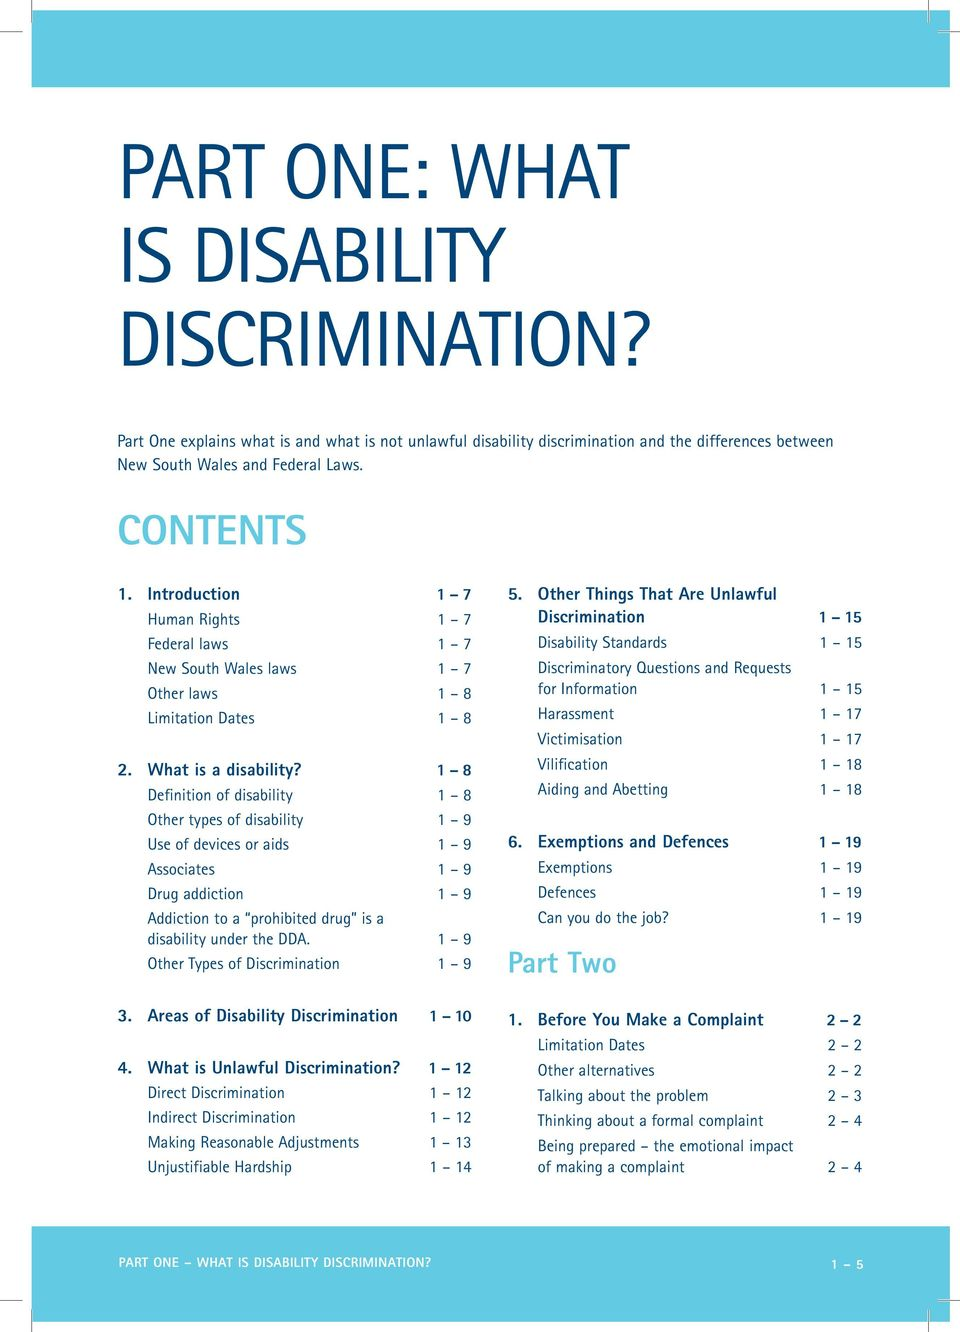 1 8 Definition of disability 1 8 Other types of disability 1 9 Use of devices or aids 1 9 Associates 1 9 Drug addiction 1 9 Addiction to a prohibited drug is a disability under the DDA.